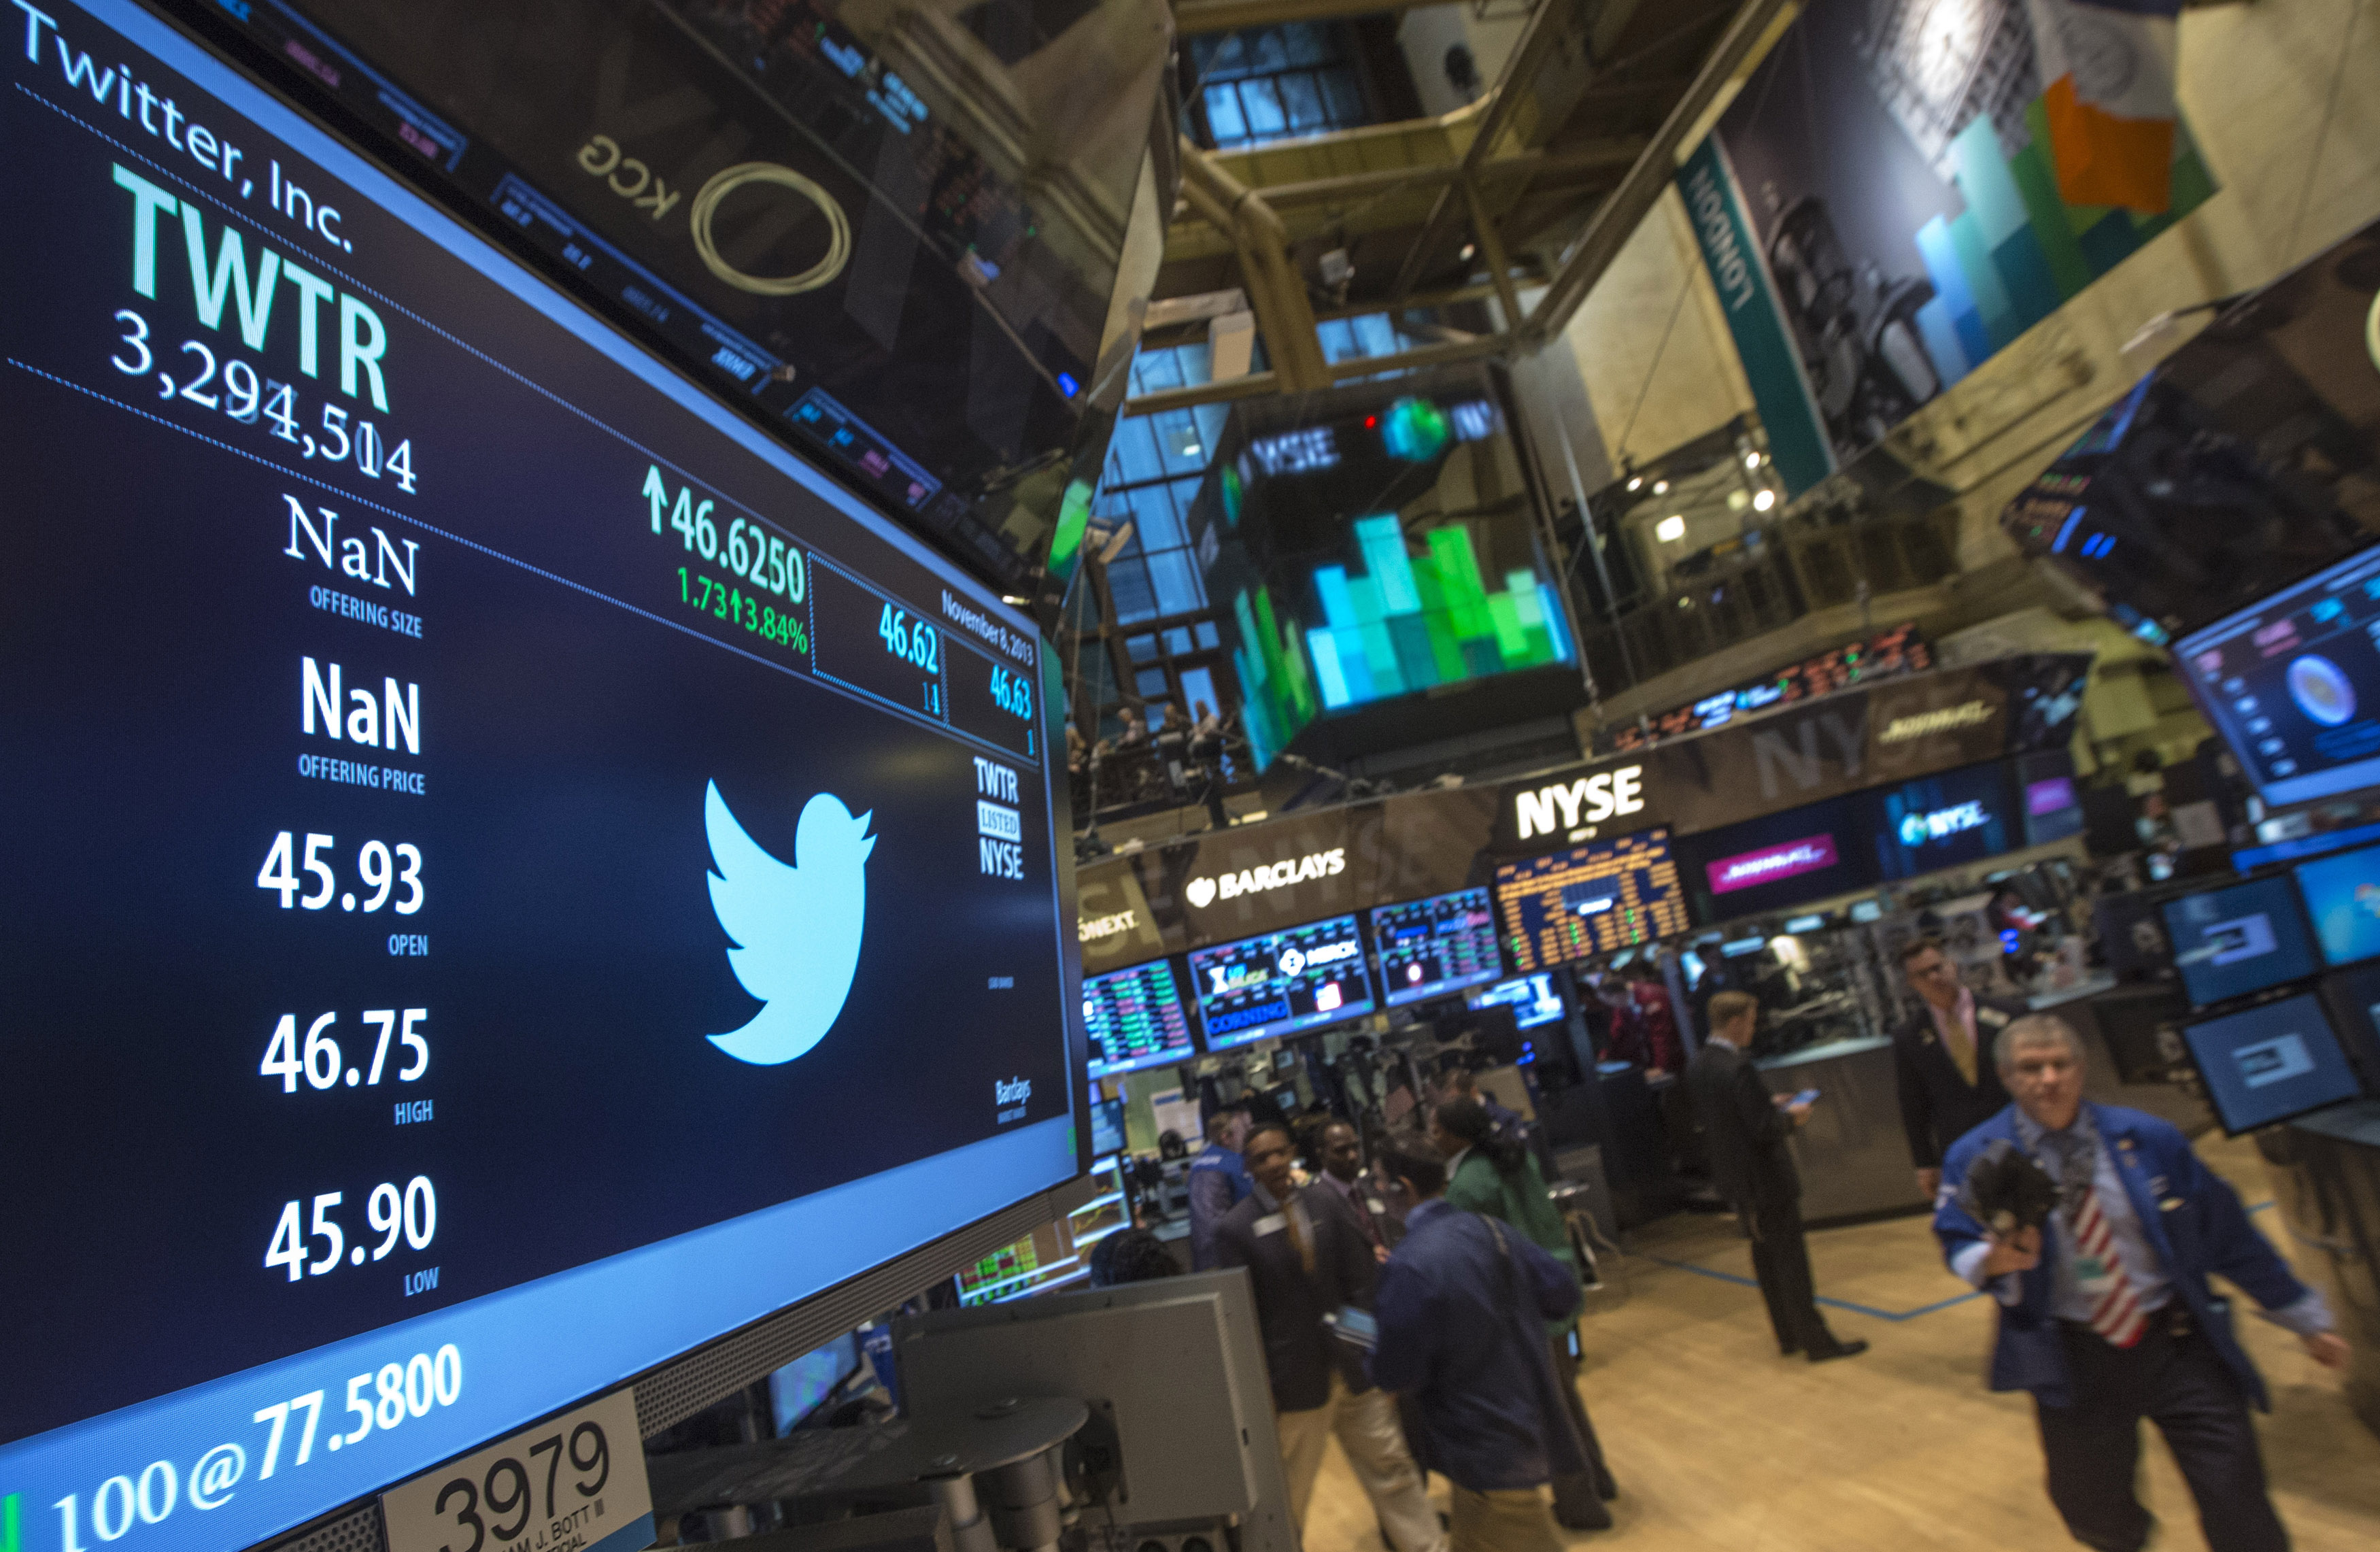 The Twitter logo is displayed on the floor of the New York Stock Exchange, November 8, 2013. Twitter Inc shares jumped 73 percent in a frenzied trading debut that drove the seven-year-old company's market value to around $25 billion and evoked the heady days of the dot-com bubble. REUTERS/Brendan McDermid